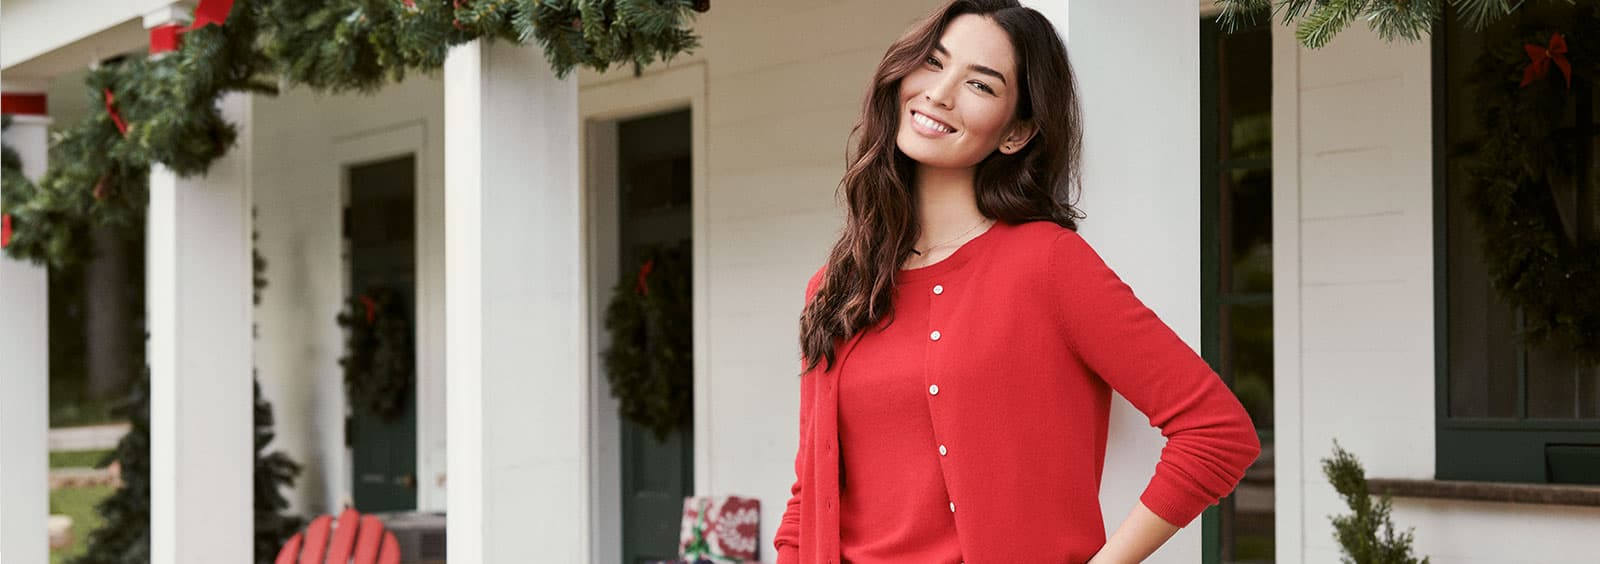 Why a Cardigan is a Staple at Work | Lands' End